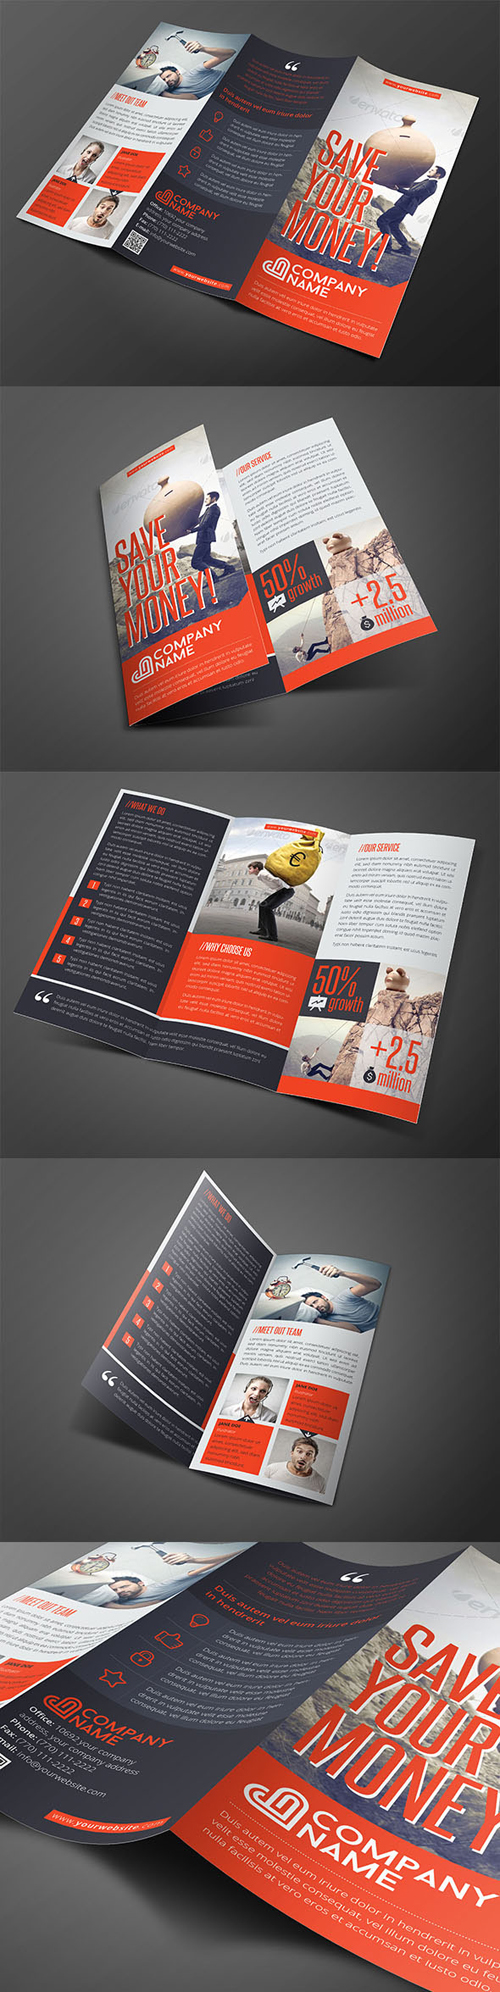 Corporate Trifold Brochure Template